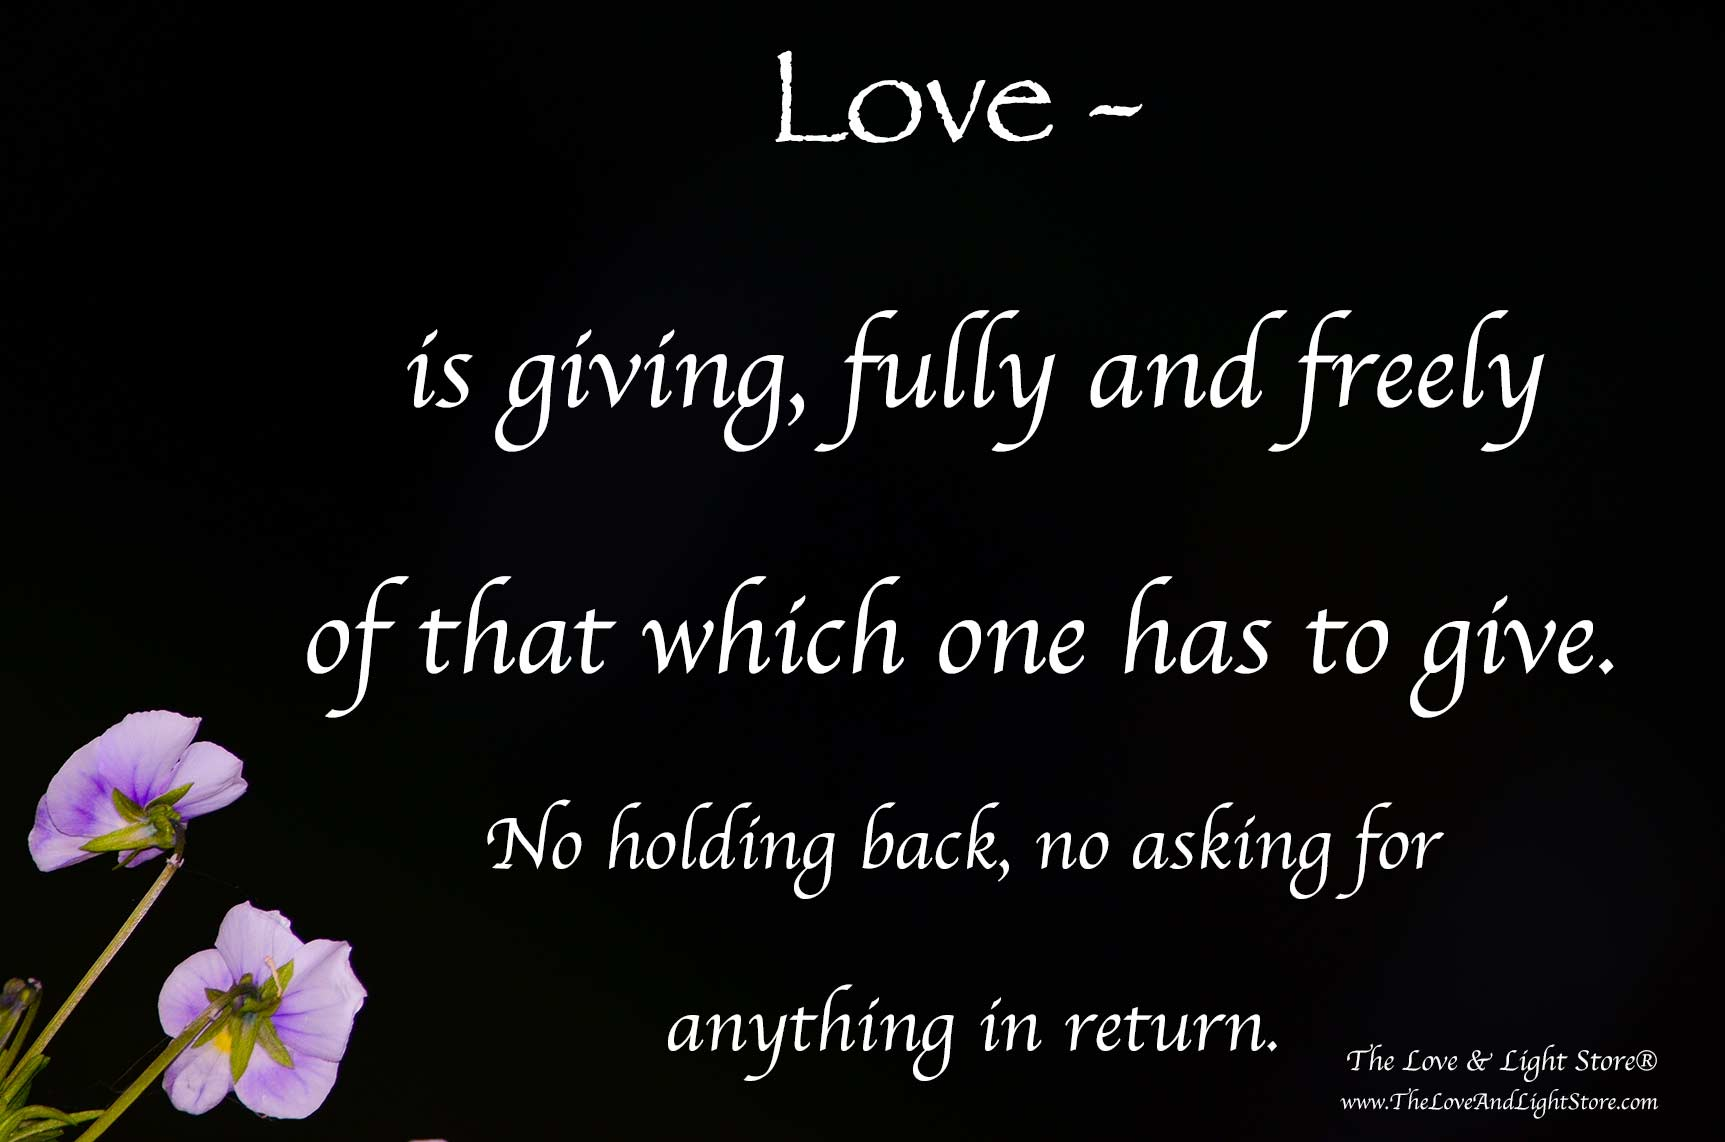 Love is giving, fully and freely of that which one has to give. God is Love.